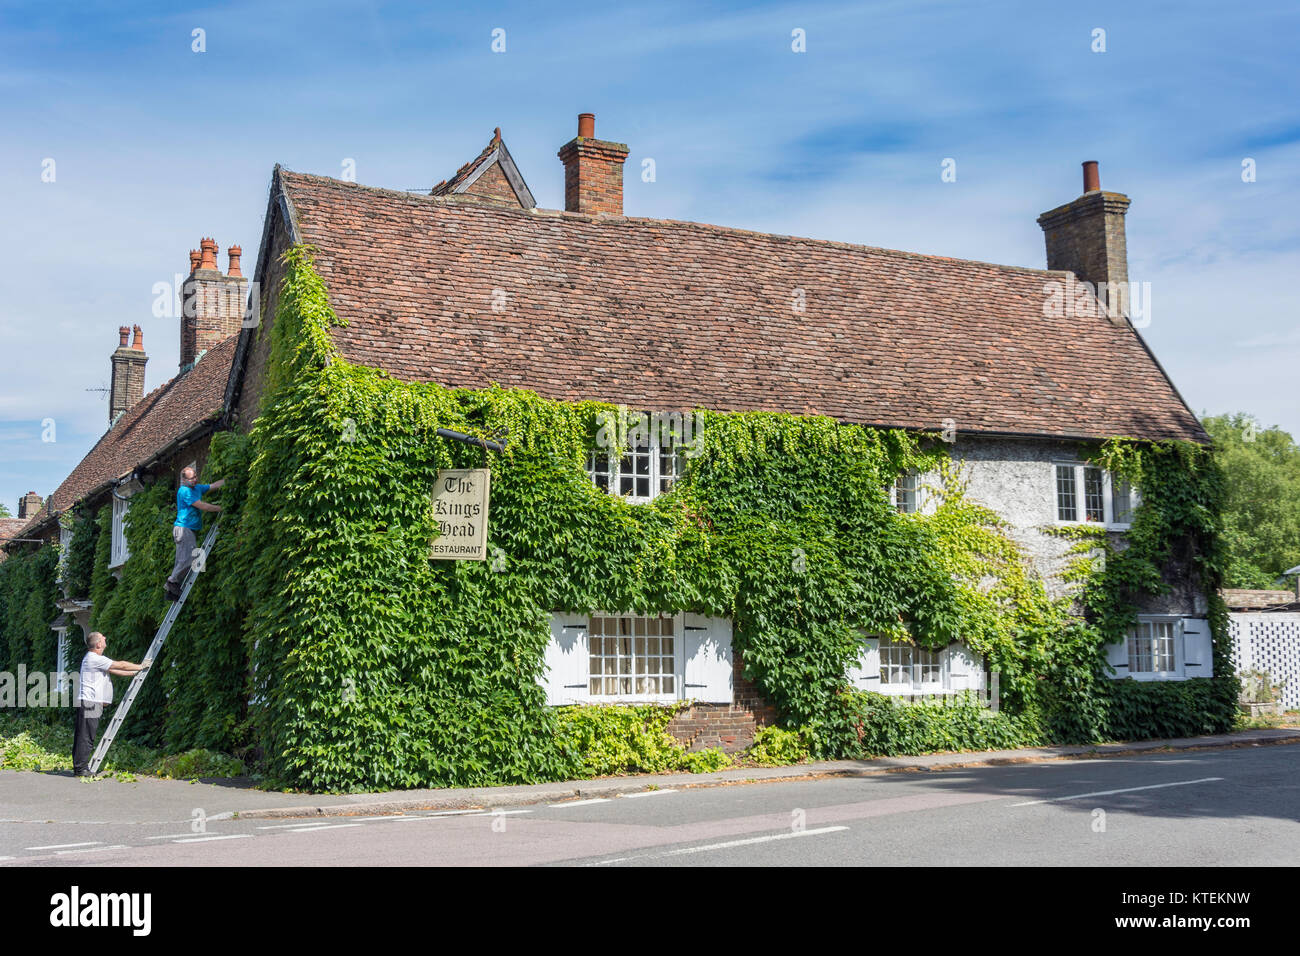 16th century The Kings Head Restaurant, Station Road, Ivinghoe, Buckinghamshire, England, United Kingdom - Stock Image